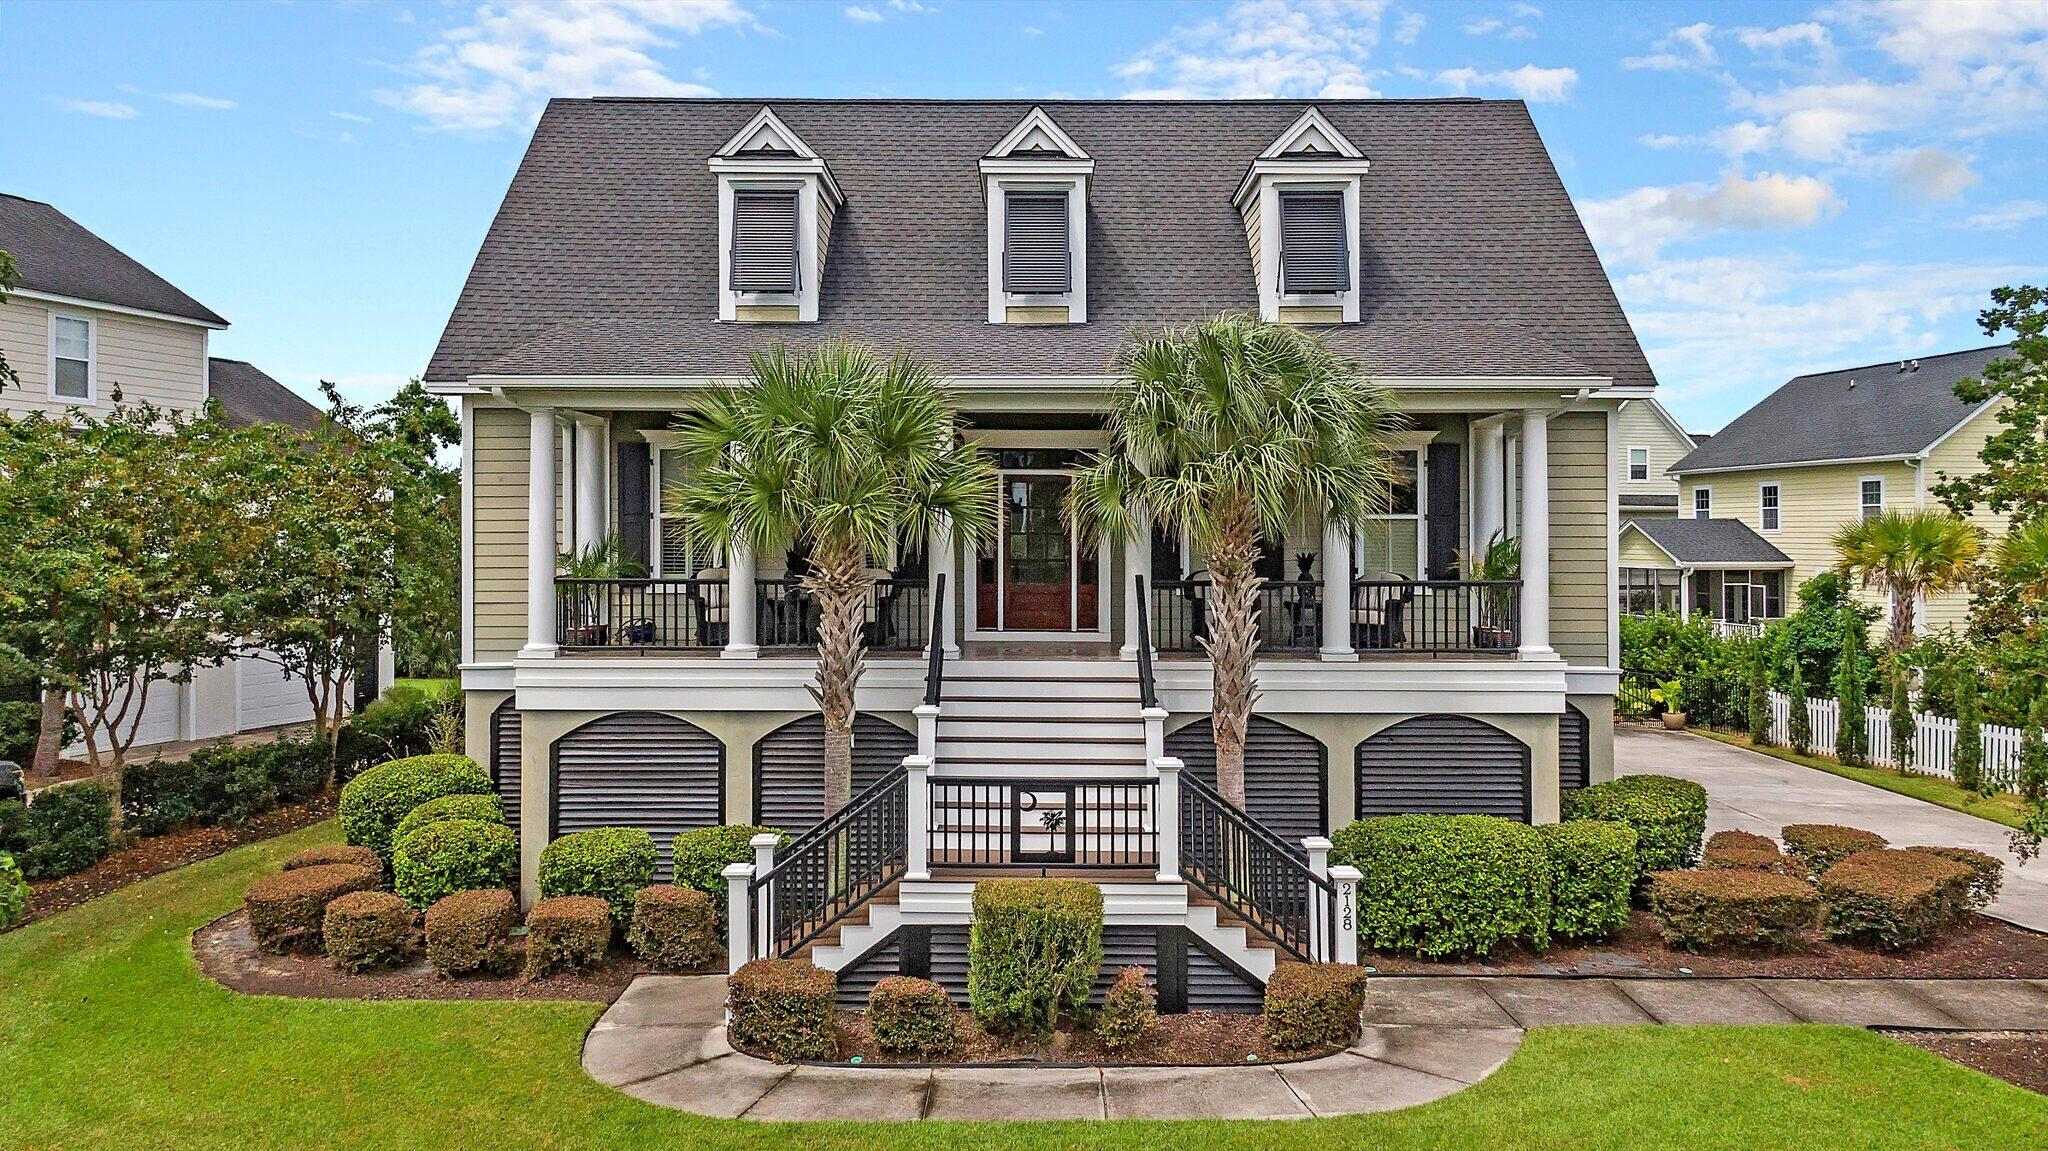 Rivertowne On The Wando Homes For Sale - 2128 Sandy Point, Mount Pleasant, SC - 49